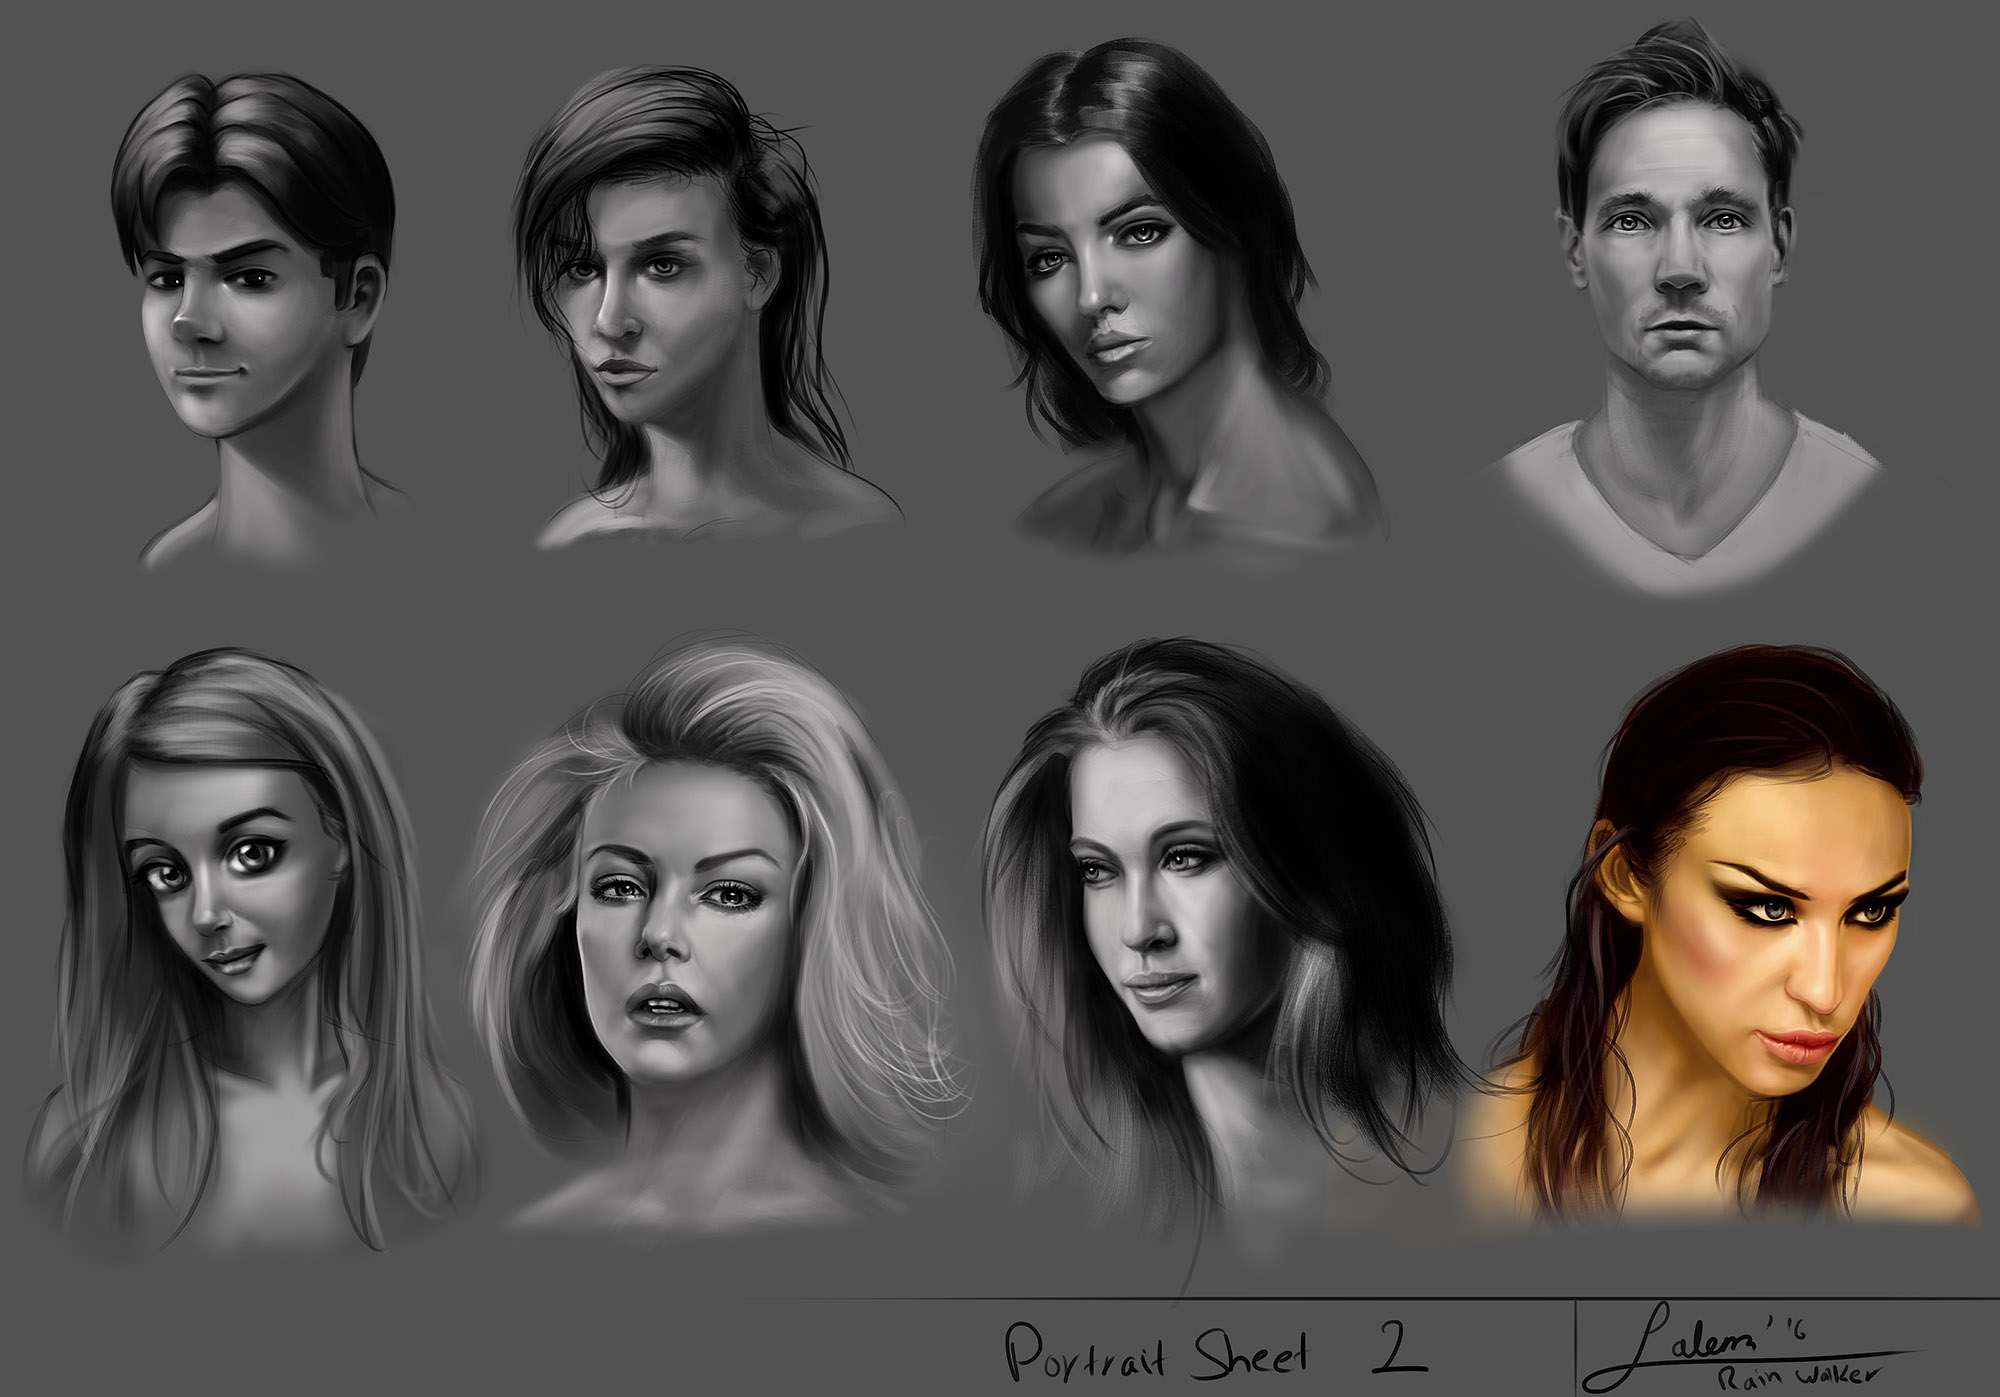 Portrait Drawing - Part 2/30 (Different Styles)